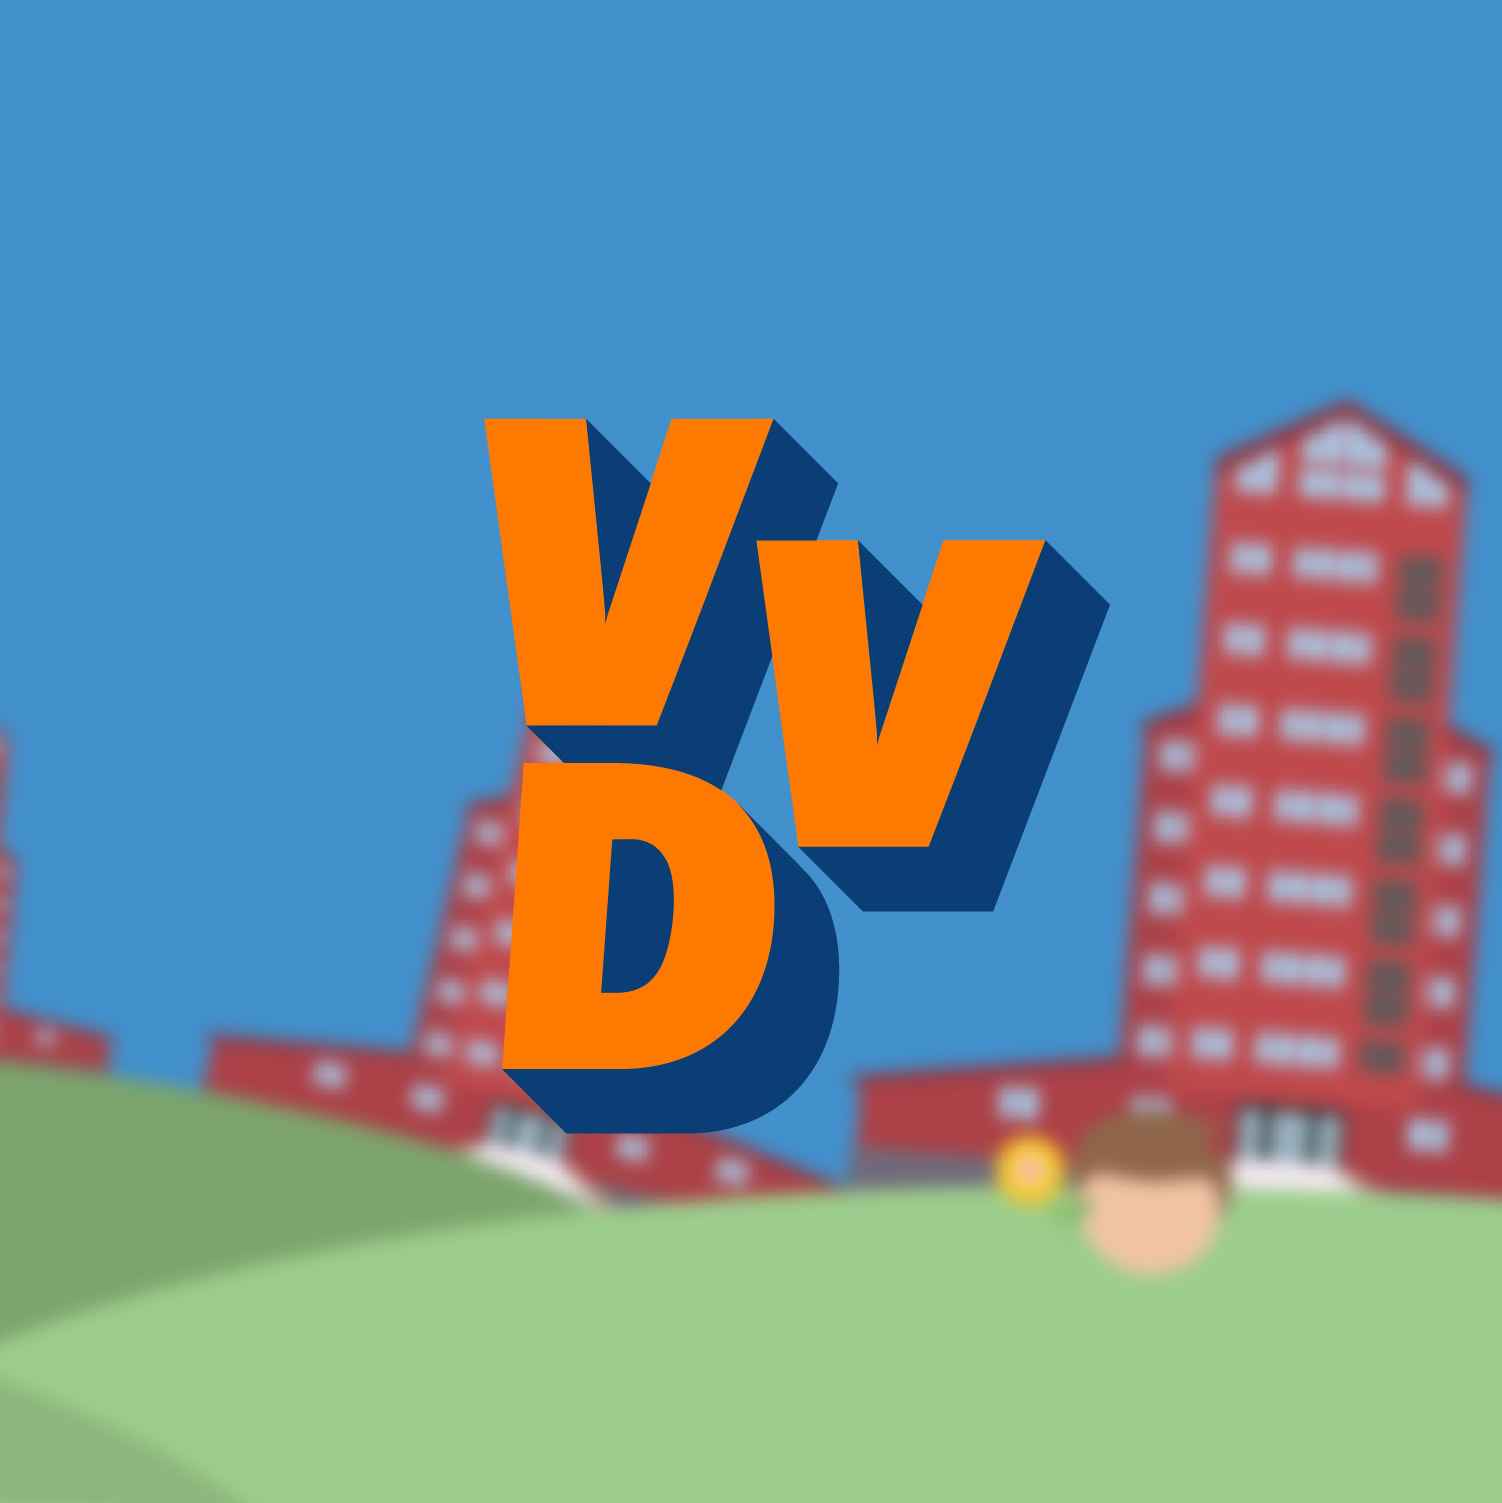 VVD | Campaign Animations